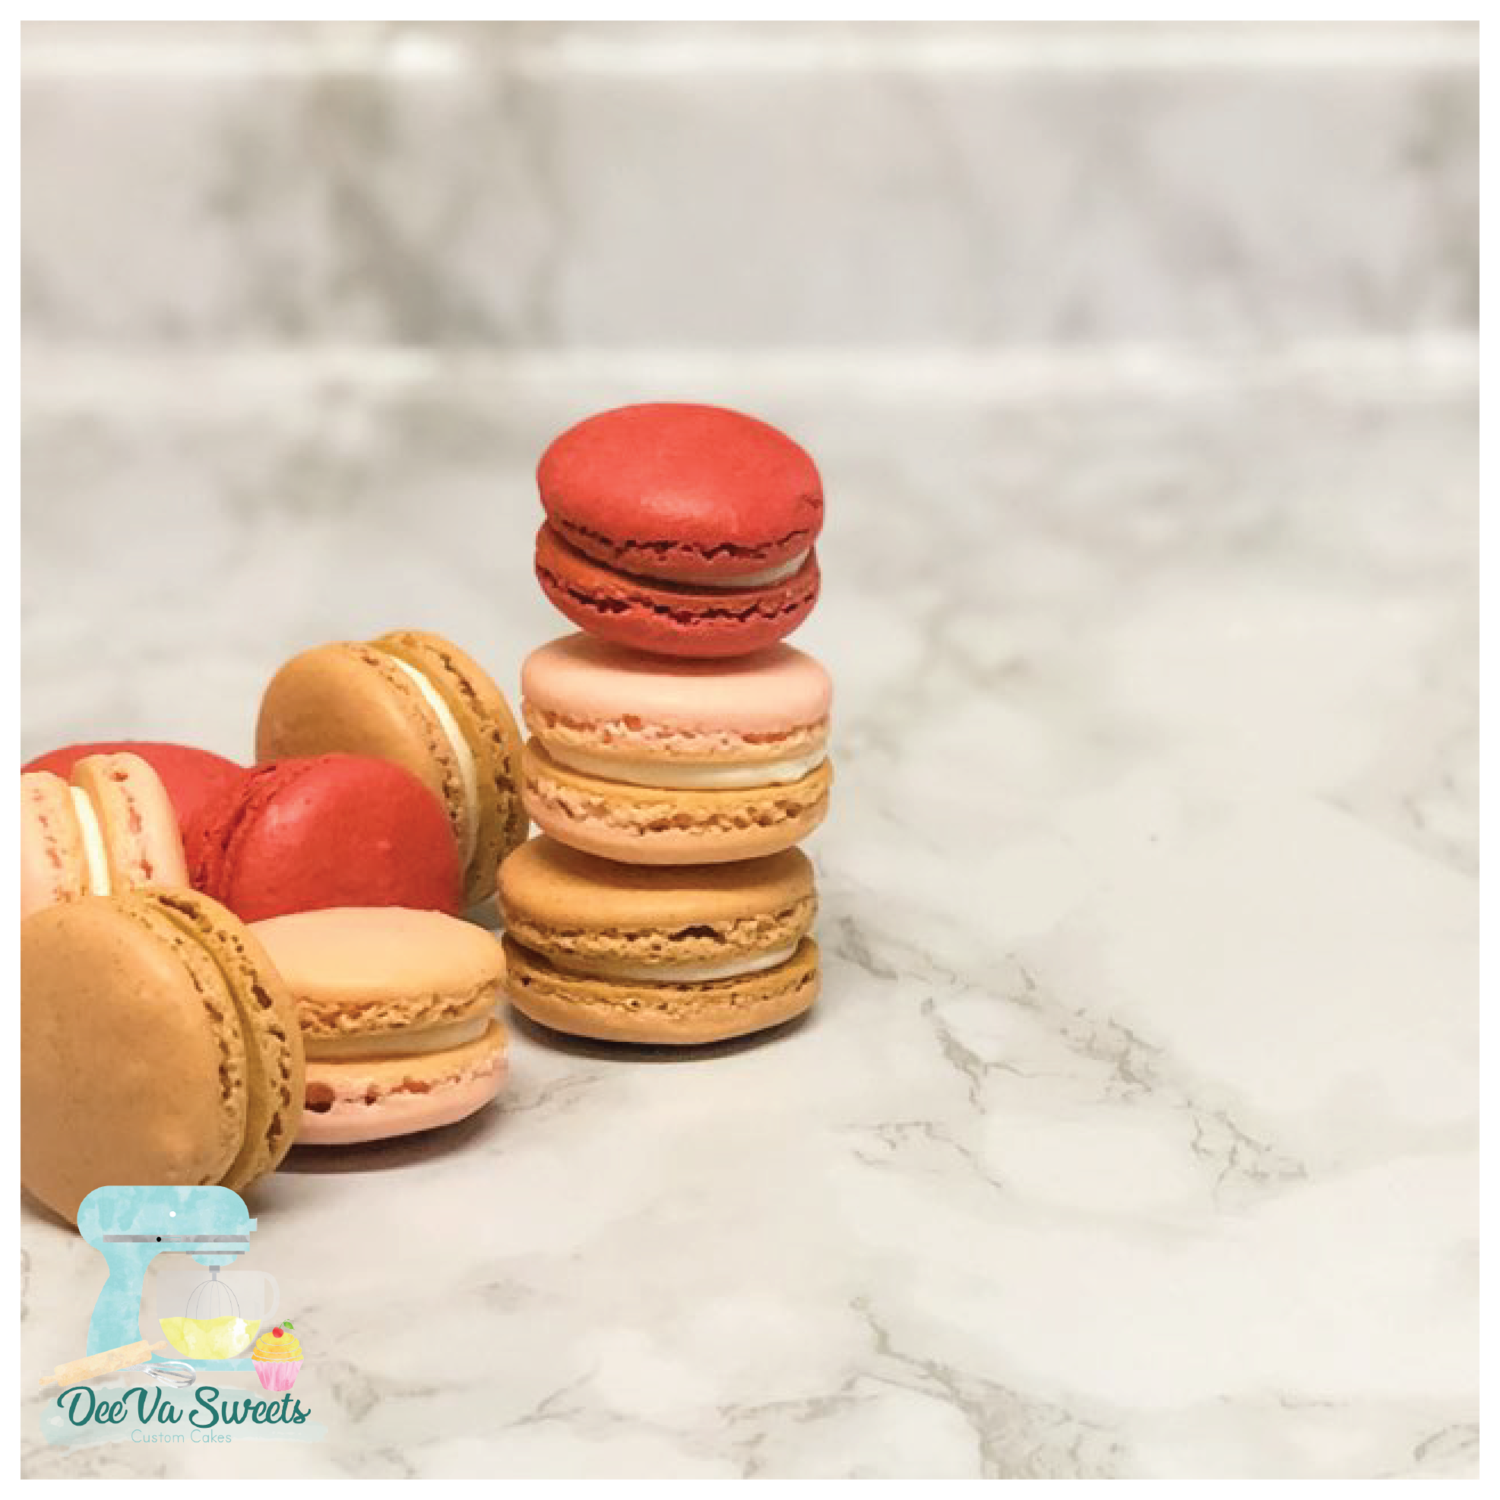 Macaron Sale- September 26th